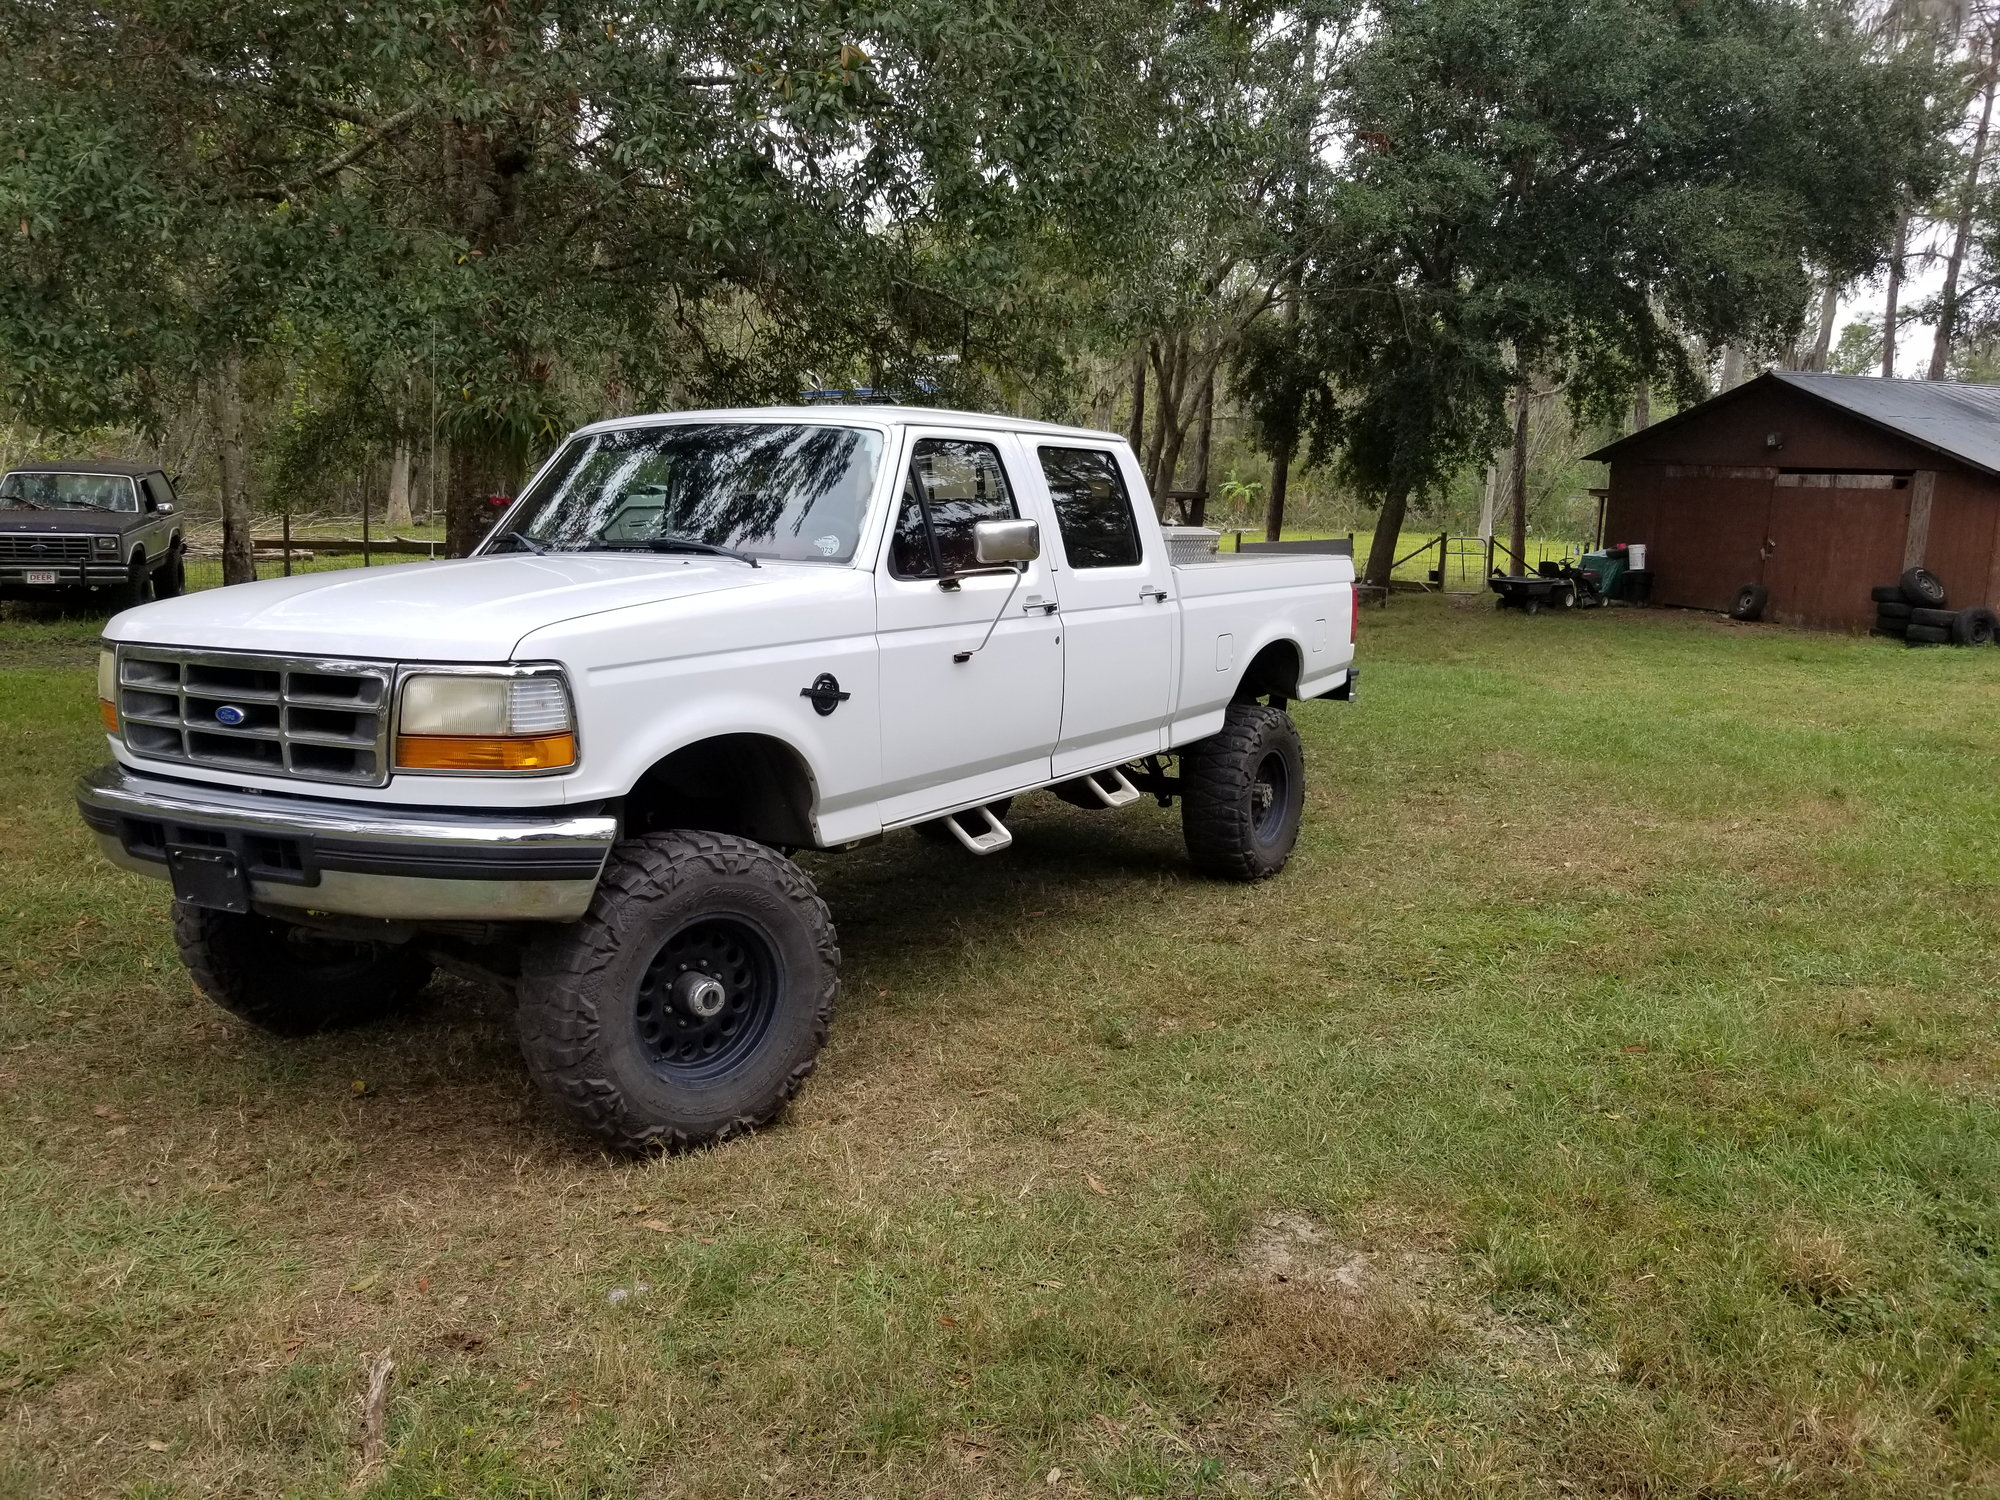 Wanted Ford Obs 7 3 Crewcab The Hull Truth Boating And Fishing Forum